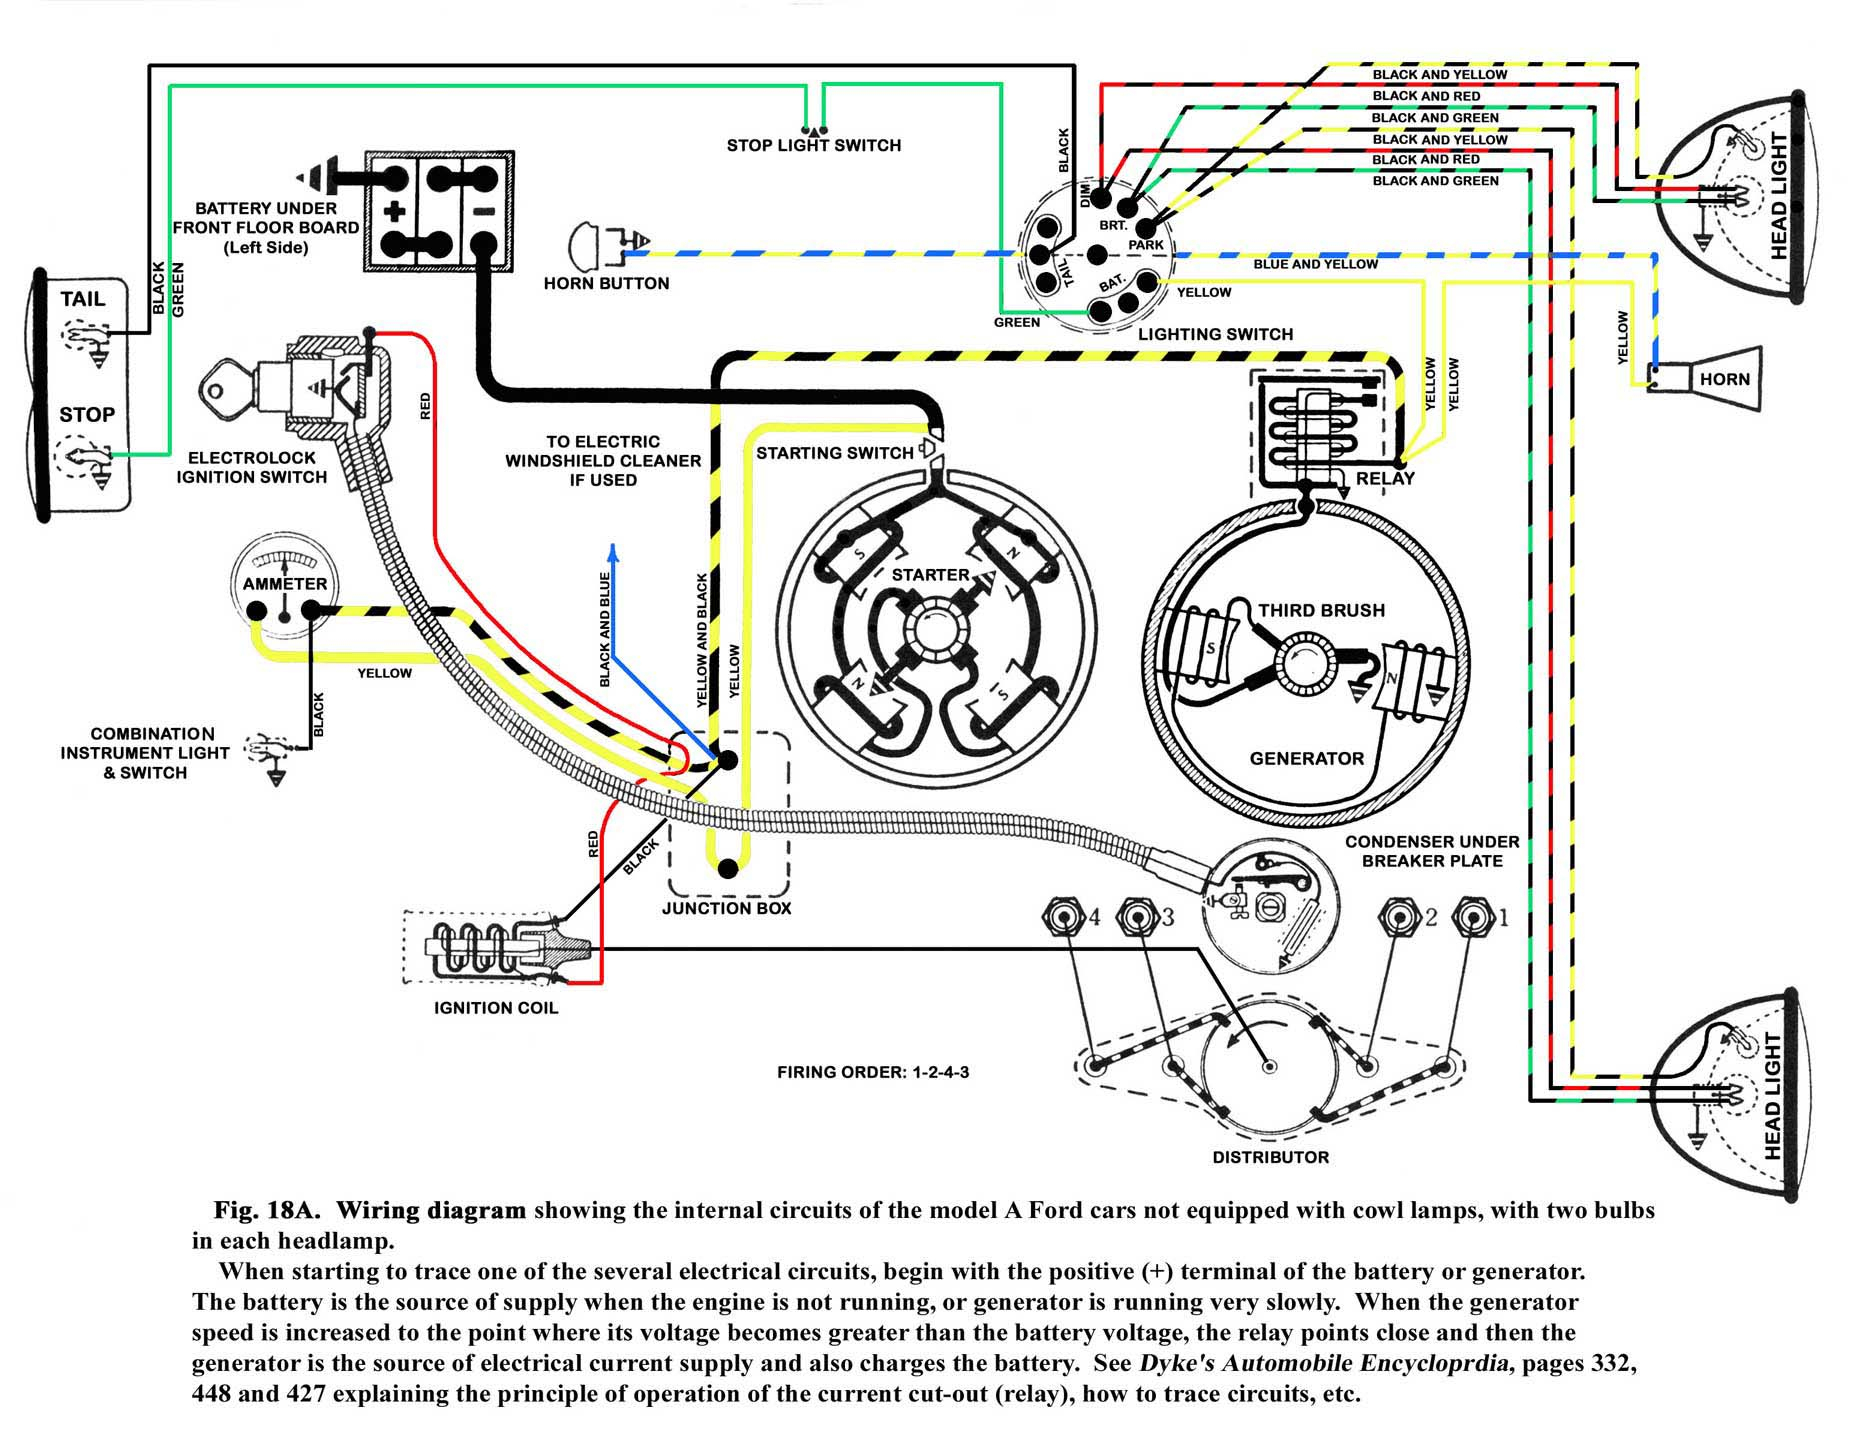 Model A Ford Coil Wiring - Wiring Diagram Detailed - Ford Ignition Coil Wiring Diagram